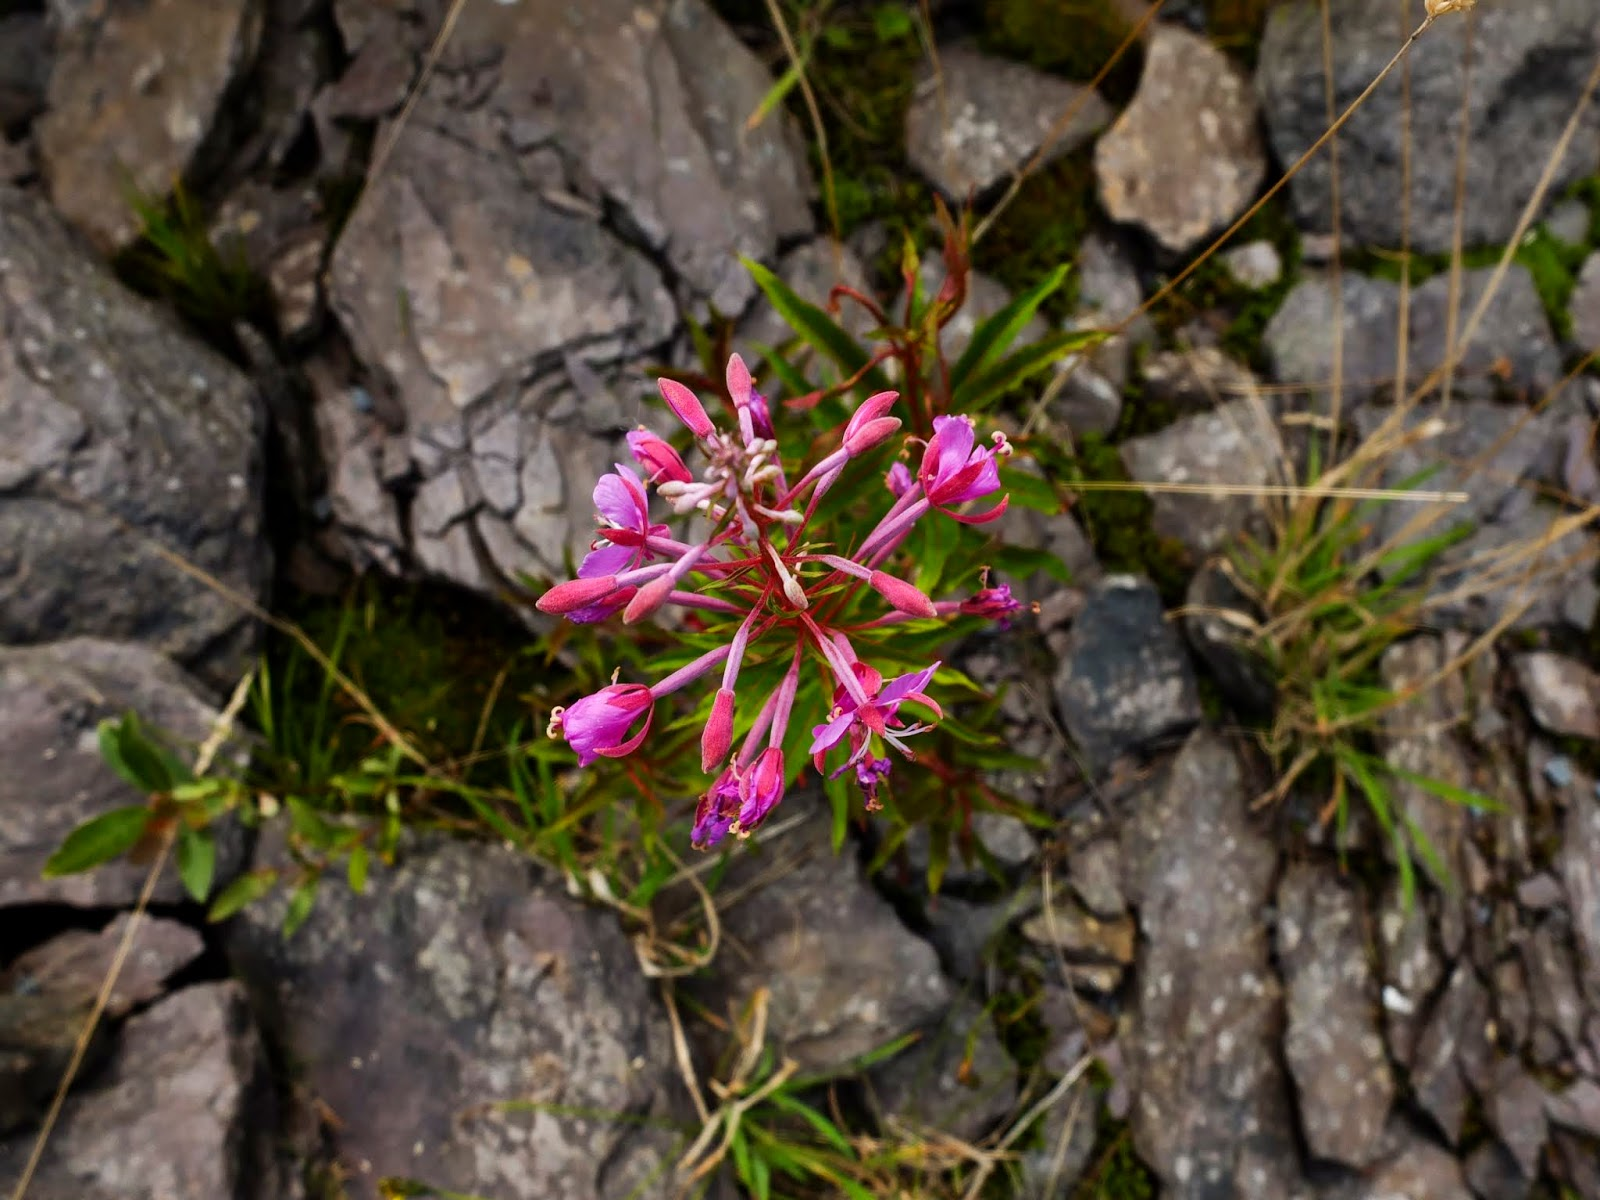 A pink fireweed plant groing in between rocks pictured from above.